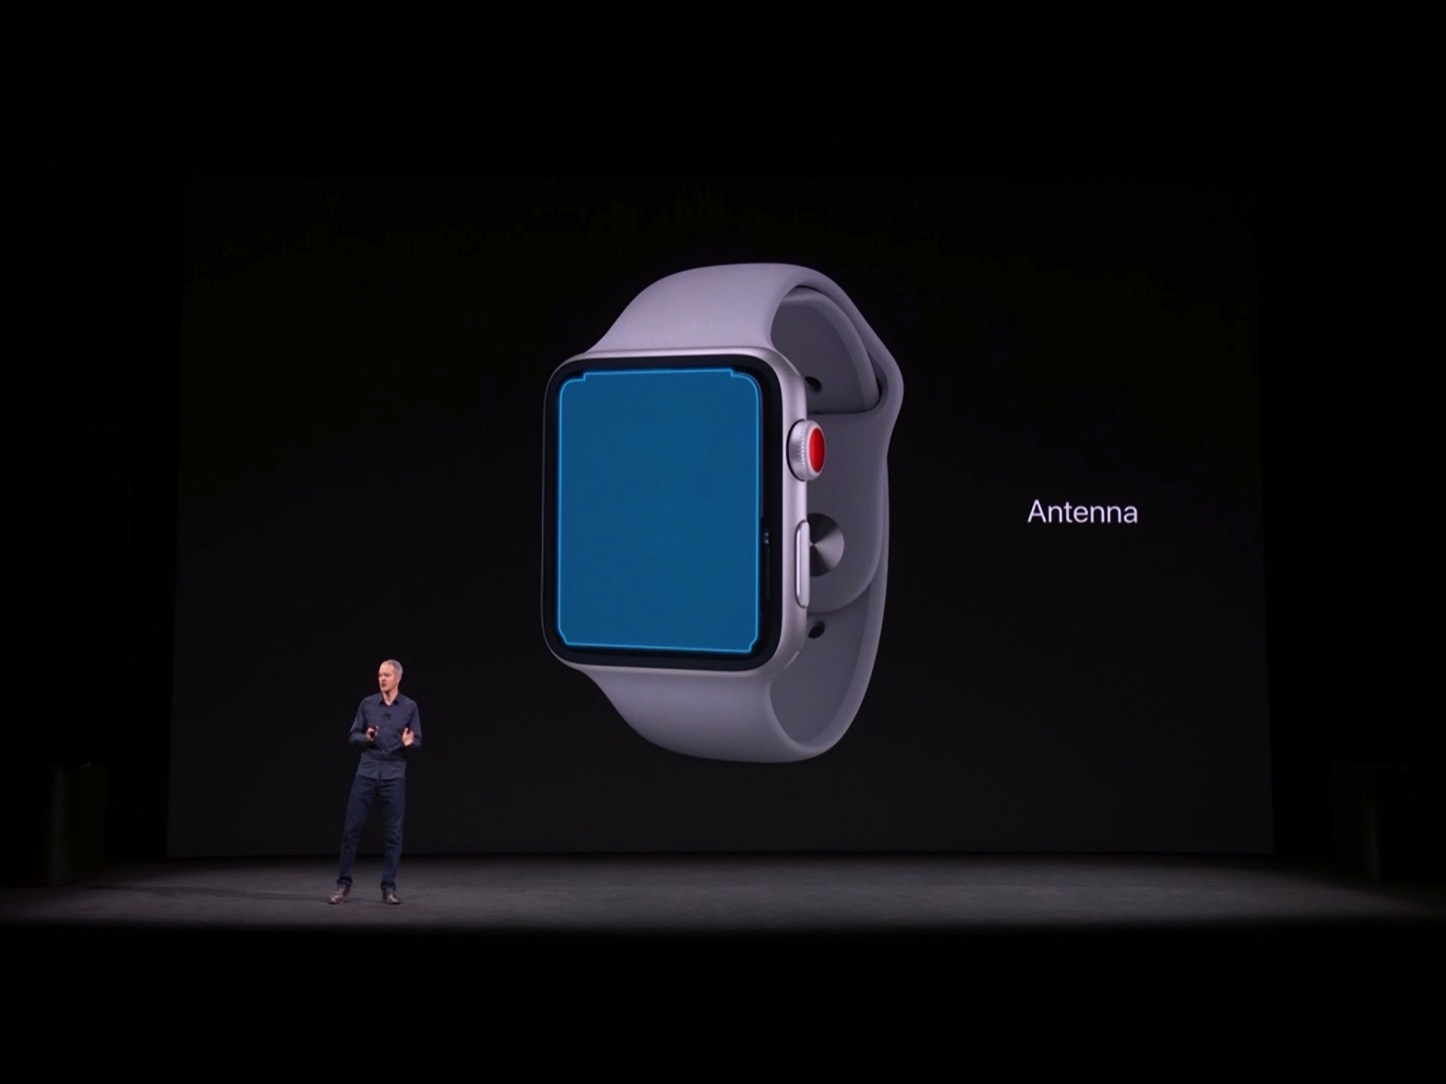 Apple-Watch-Series-3-13.jpg